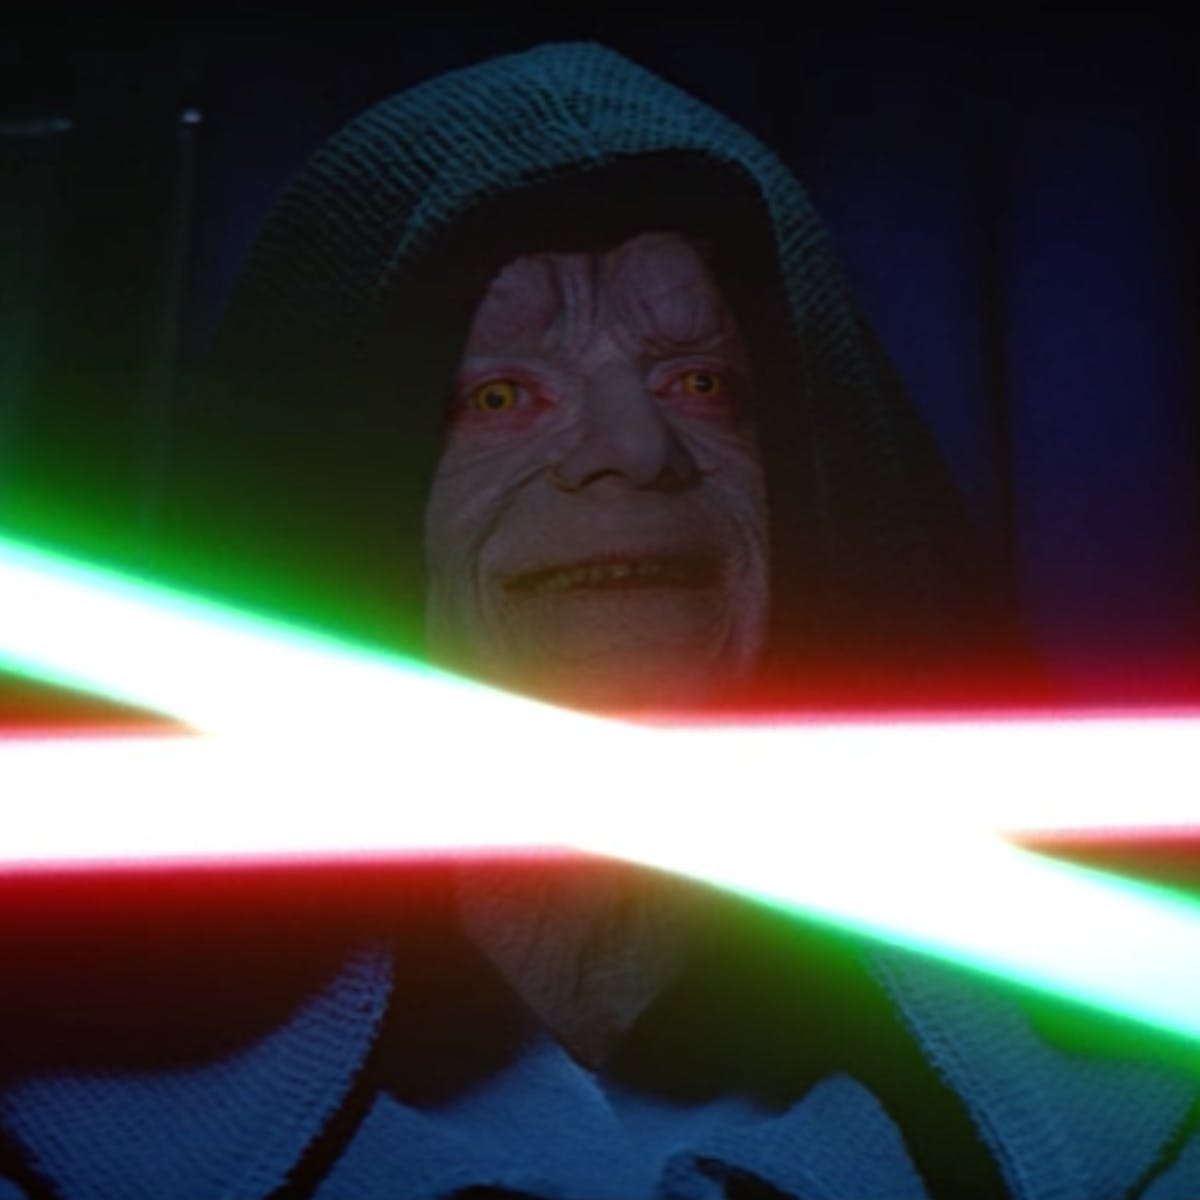 'Star Wars 9' Theory: Snoke Comic Reveals How Palpatine May Have Survived